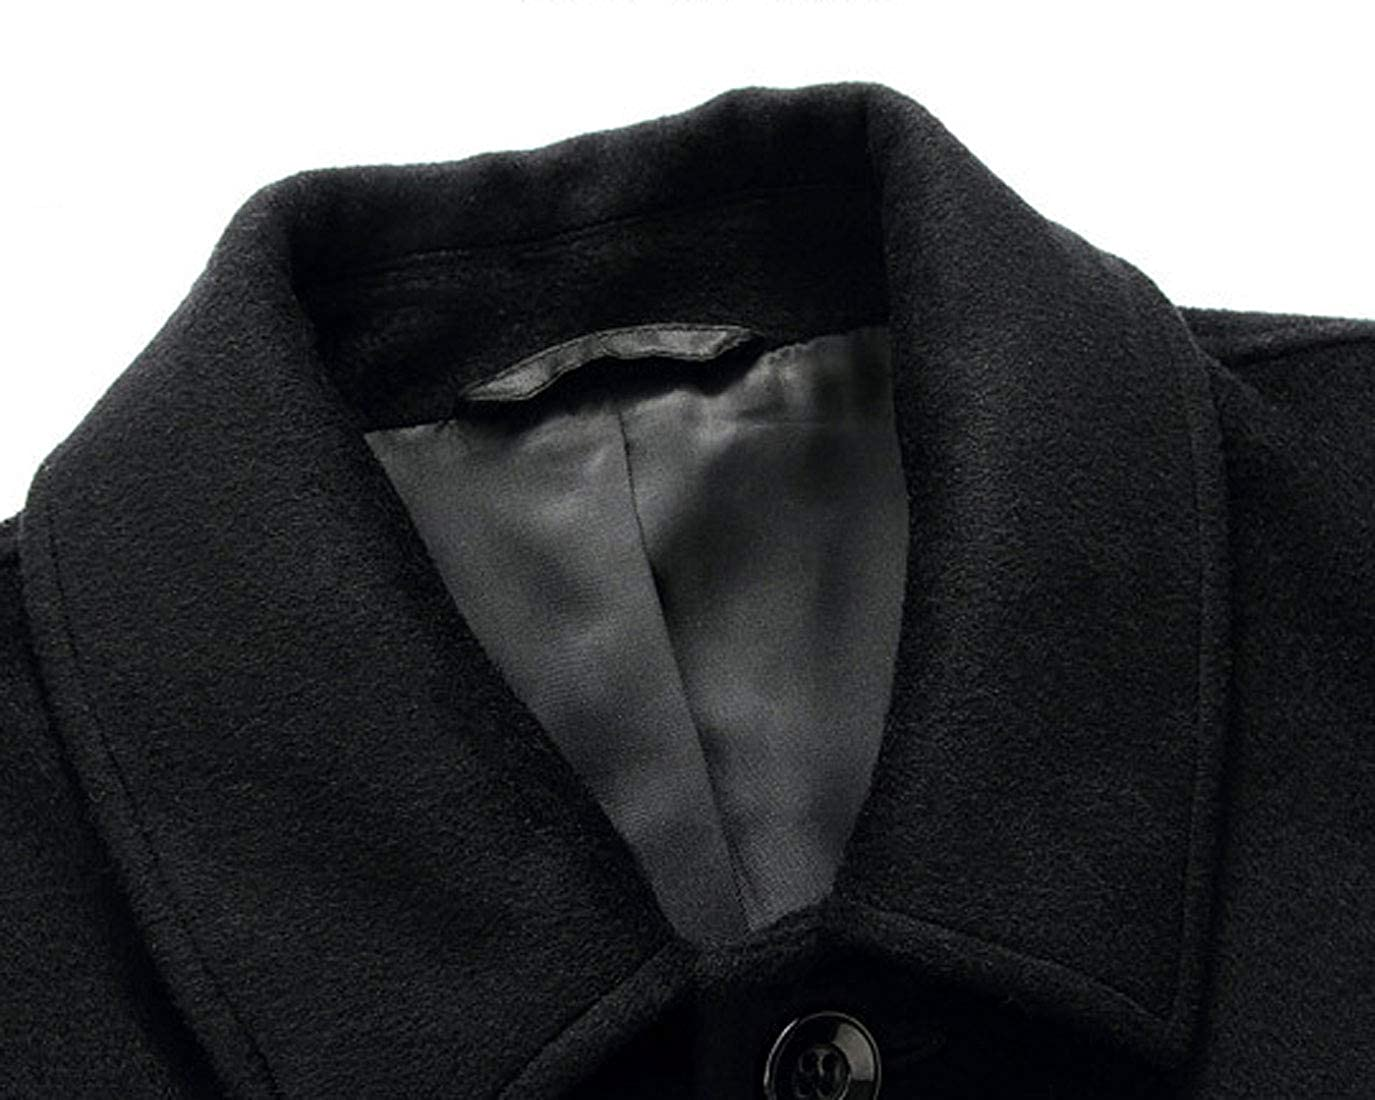 Chartou Mens Classic Mid-Length Quilted Wool Car Coat with Detachable Scarf Black, Medium